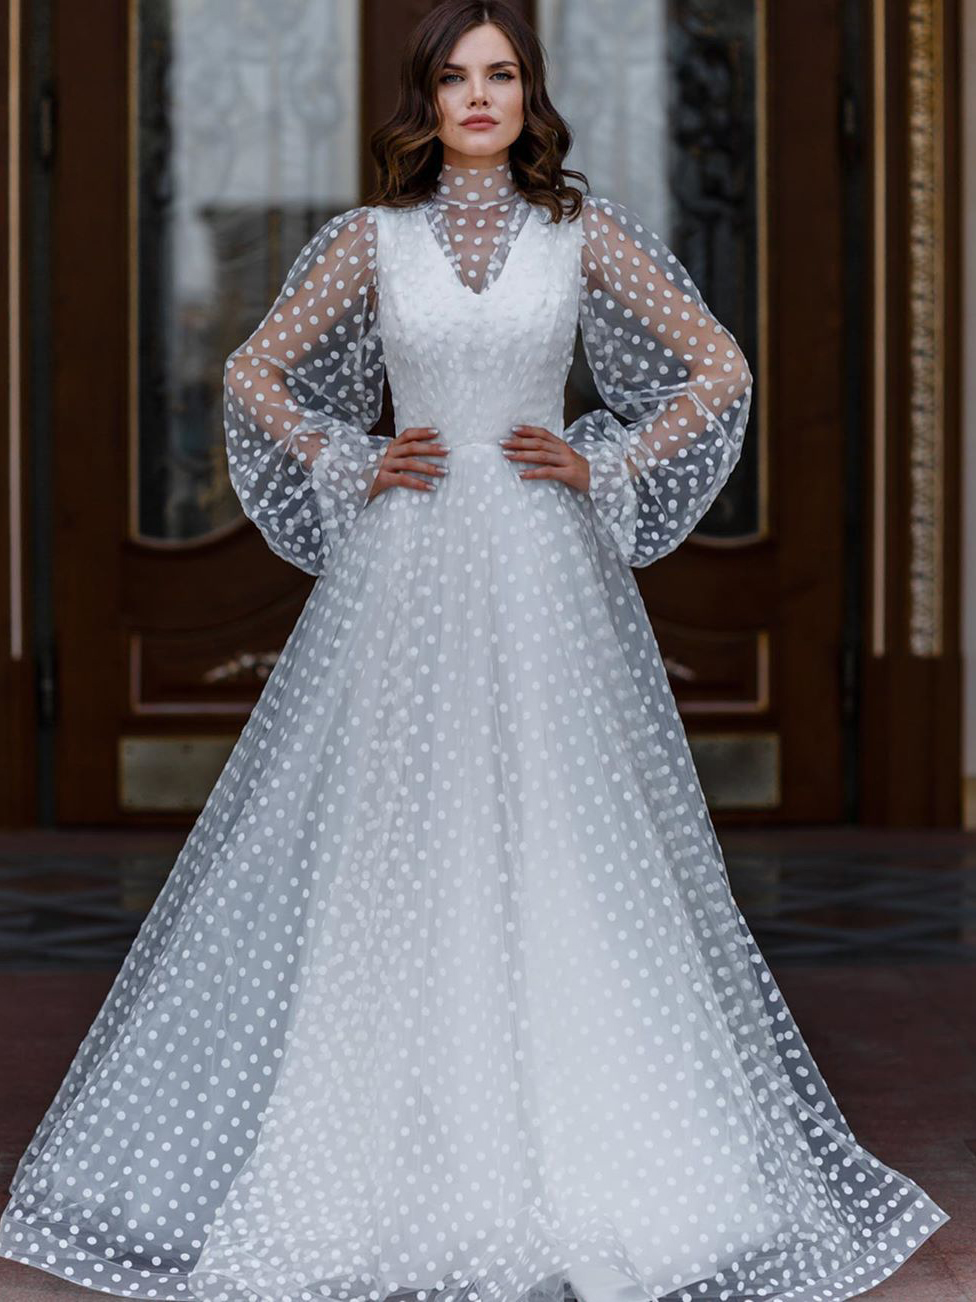 Polka Dots Tulle Long Sleeve Wedding Dresses White S Xl Solid Wedding Dress Tulle Sleeves Polka Dot Tulle Wedding Dress Wedding Dress Long Sleeve